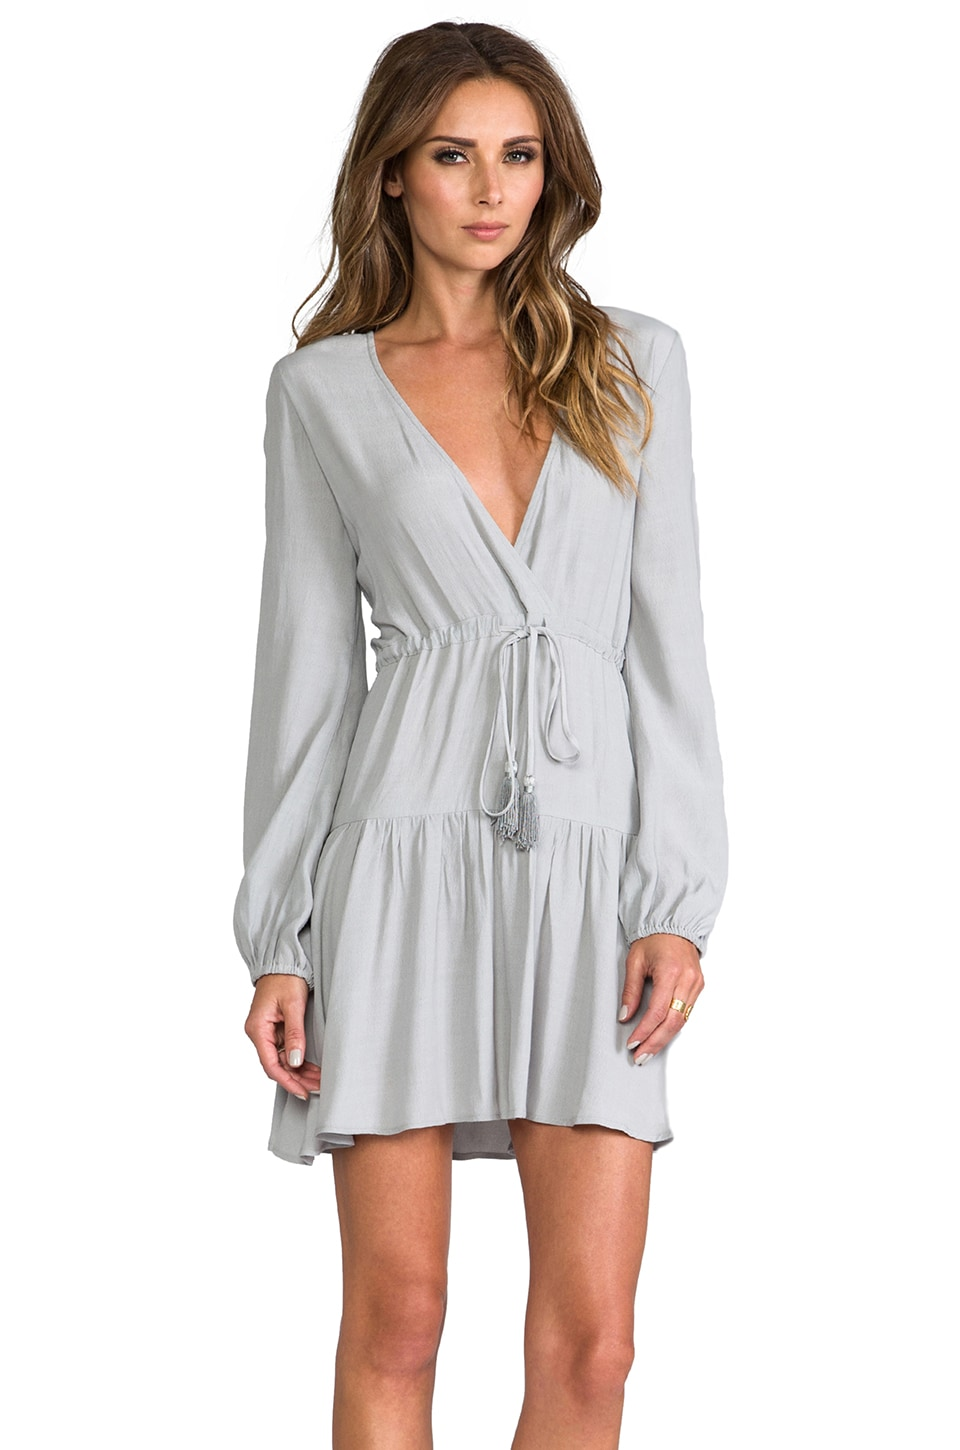 SAM&LAVI Gianna Dress in Dove Grey